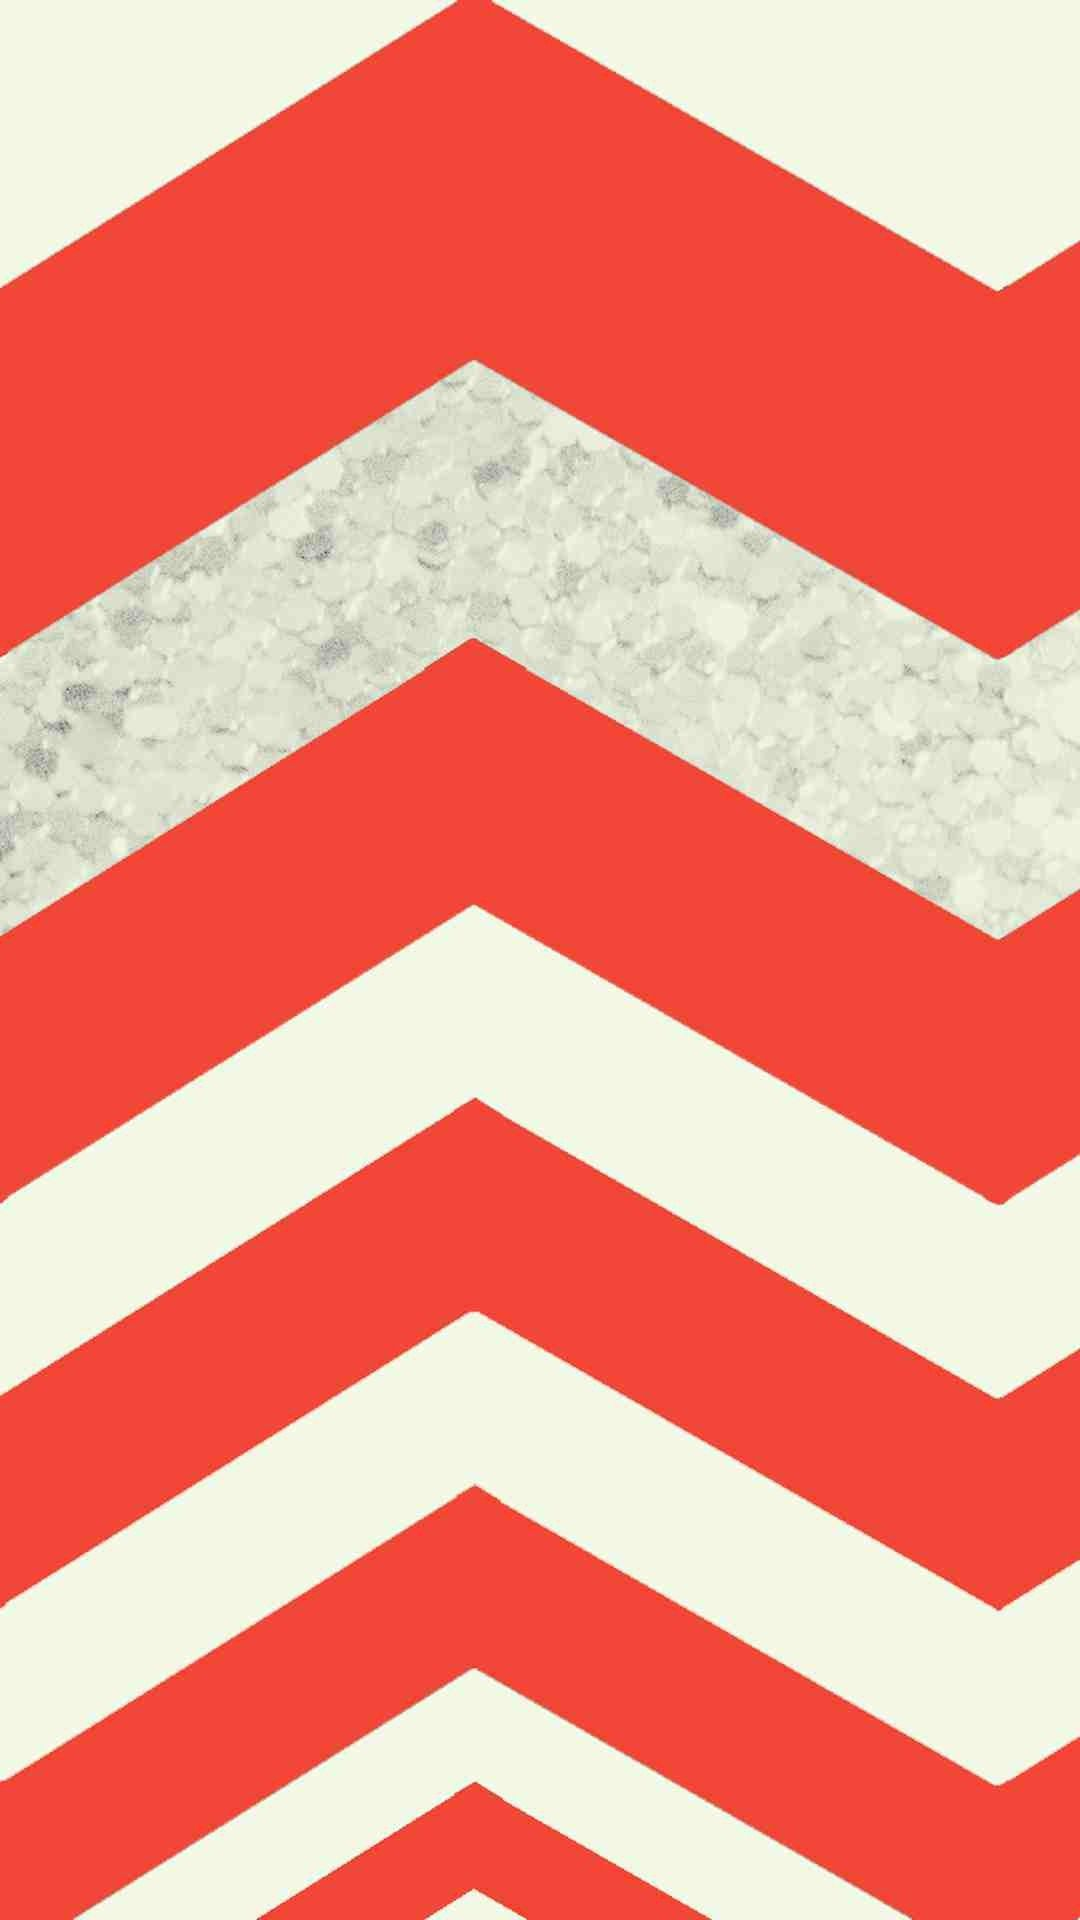 Red And White Wallpaper huge red chevron pattern iphone 6 plus wallpaper - ze print